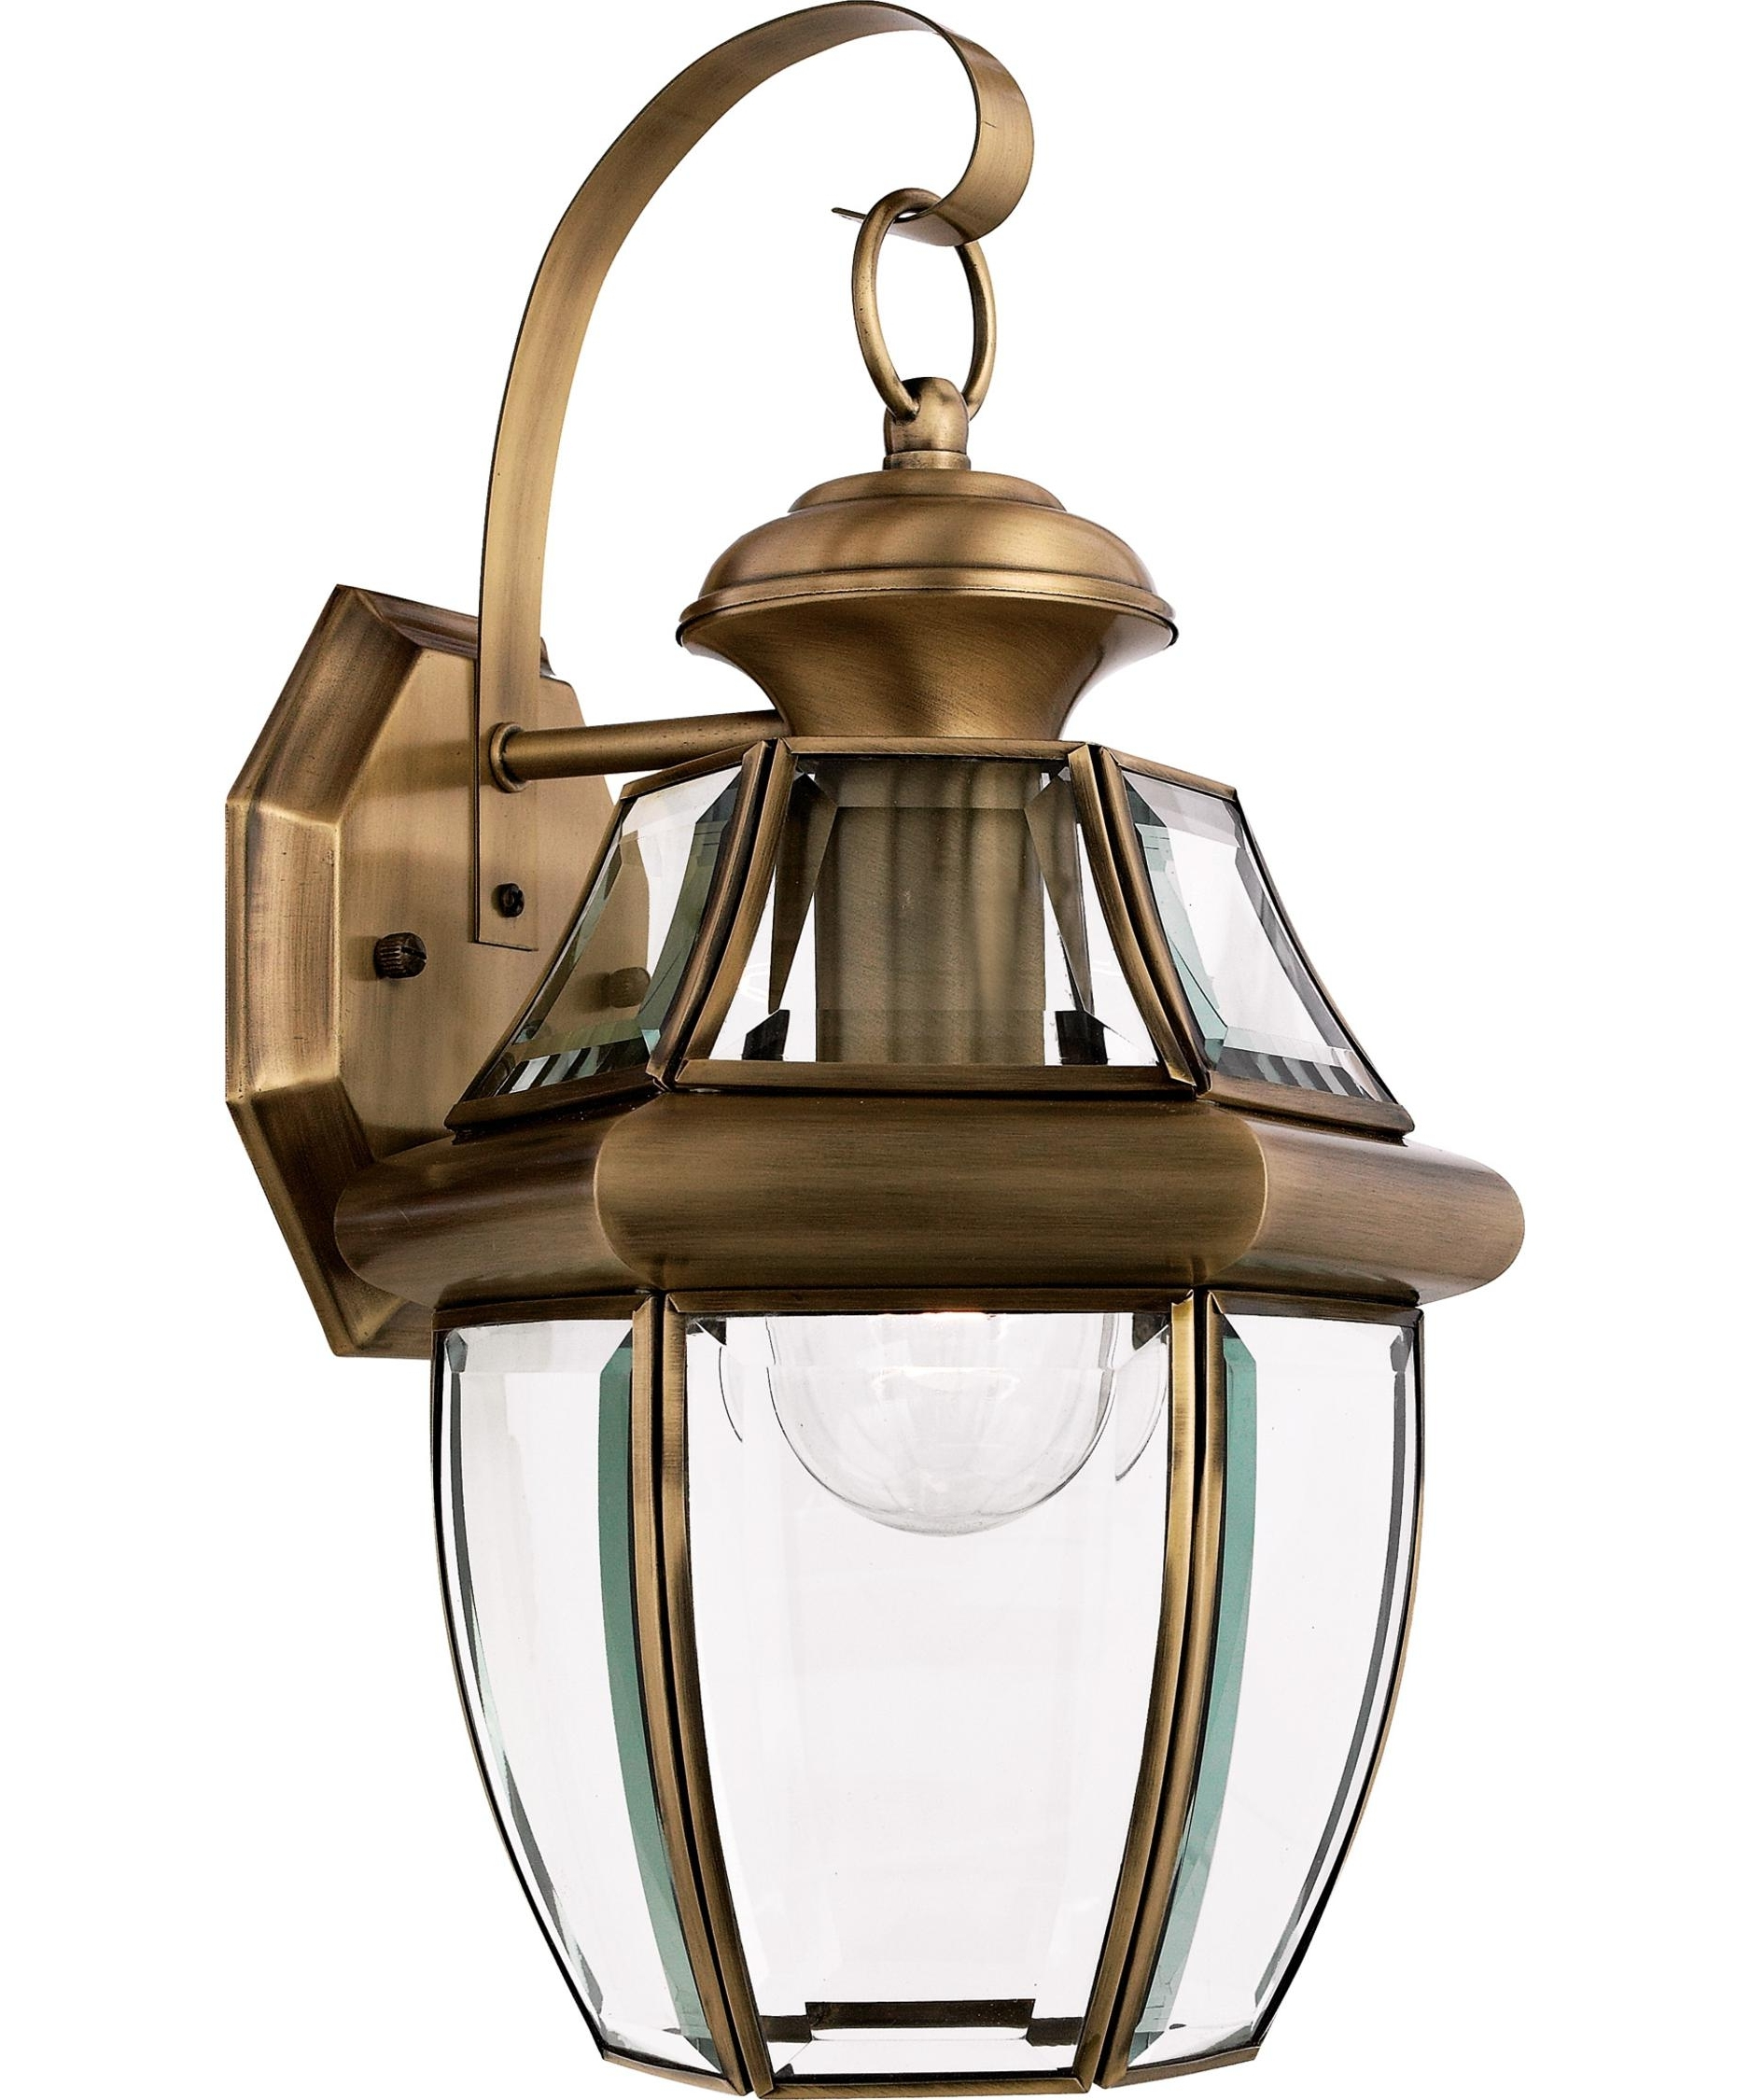 Light : Fresh Antique Brass Outdoor Wall Lights In Solar Uk With Throughout Most Current Outdoor Wall Lantern Lighting (View 17 of 20)